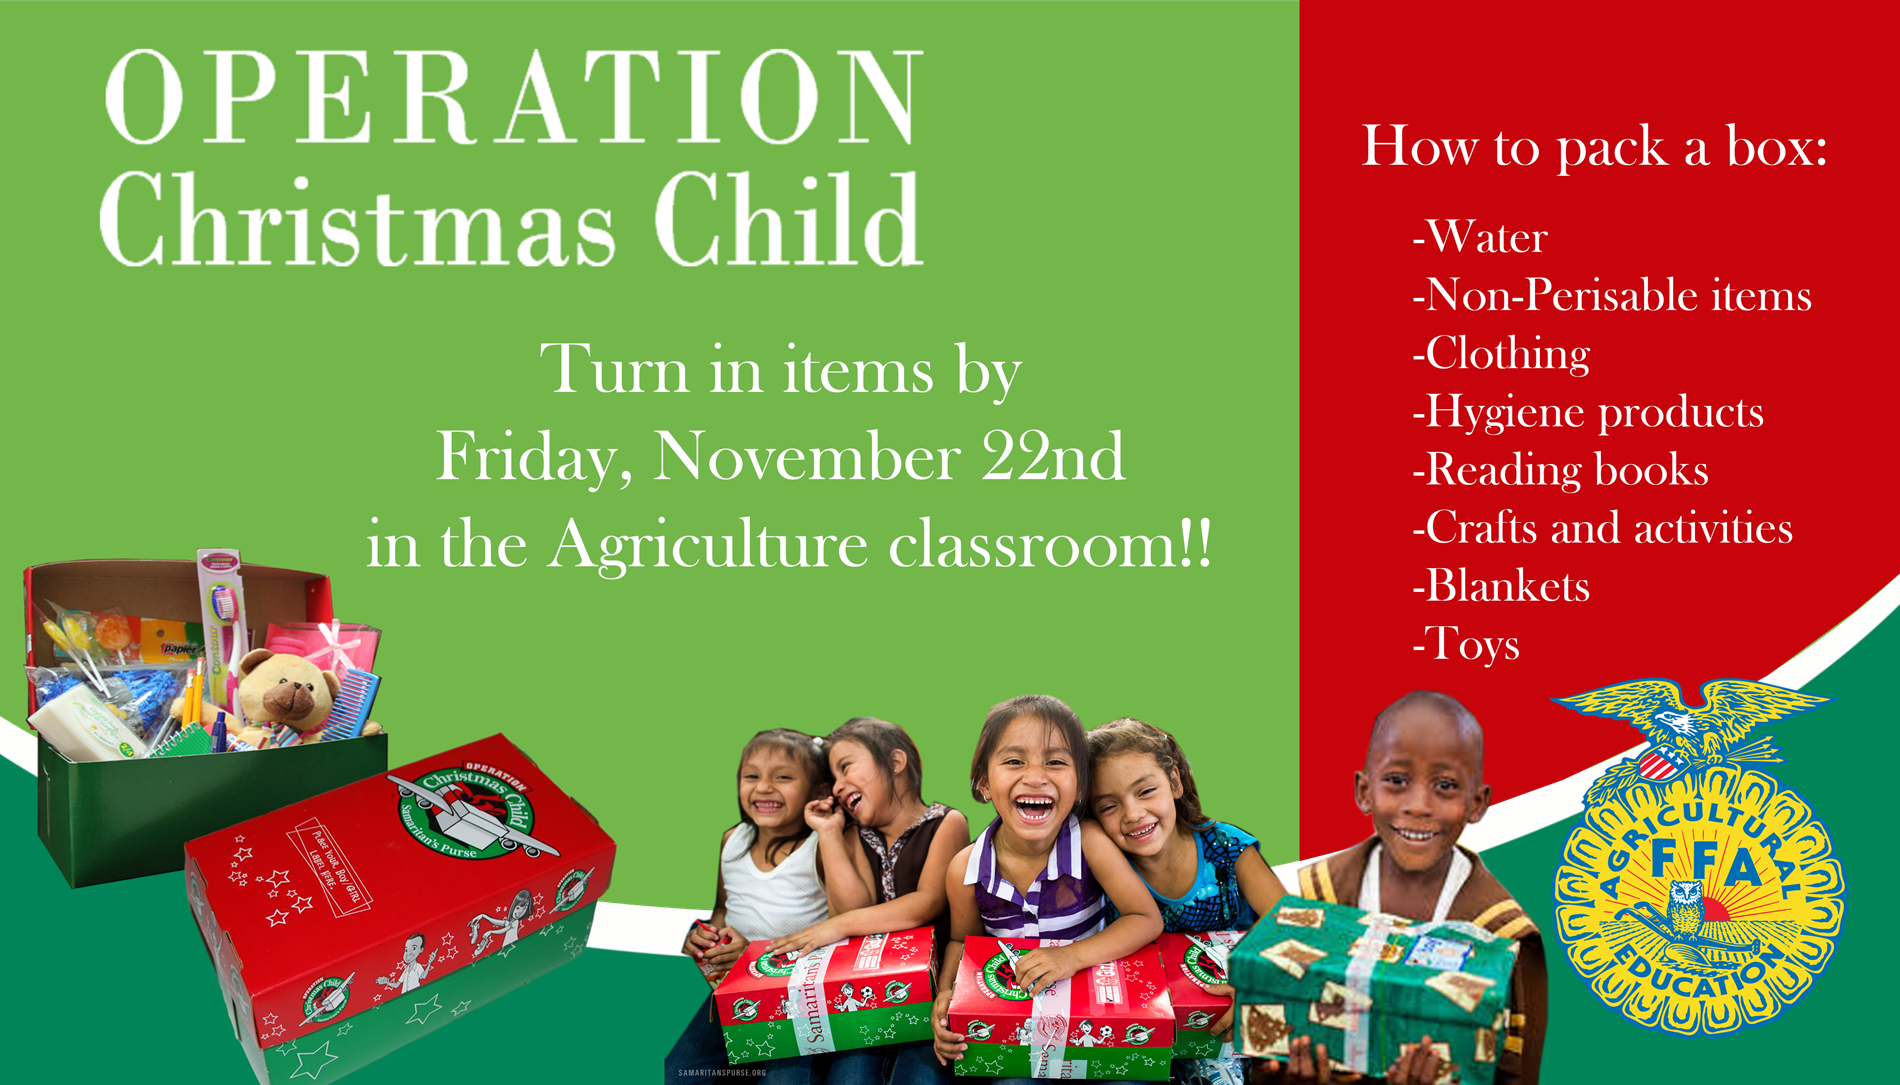 Operation Christmas Child. Turn in items by Friday, November 22nd in the Ariculture classroom.